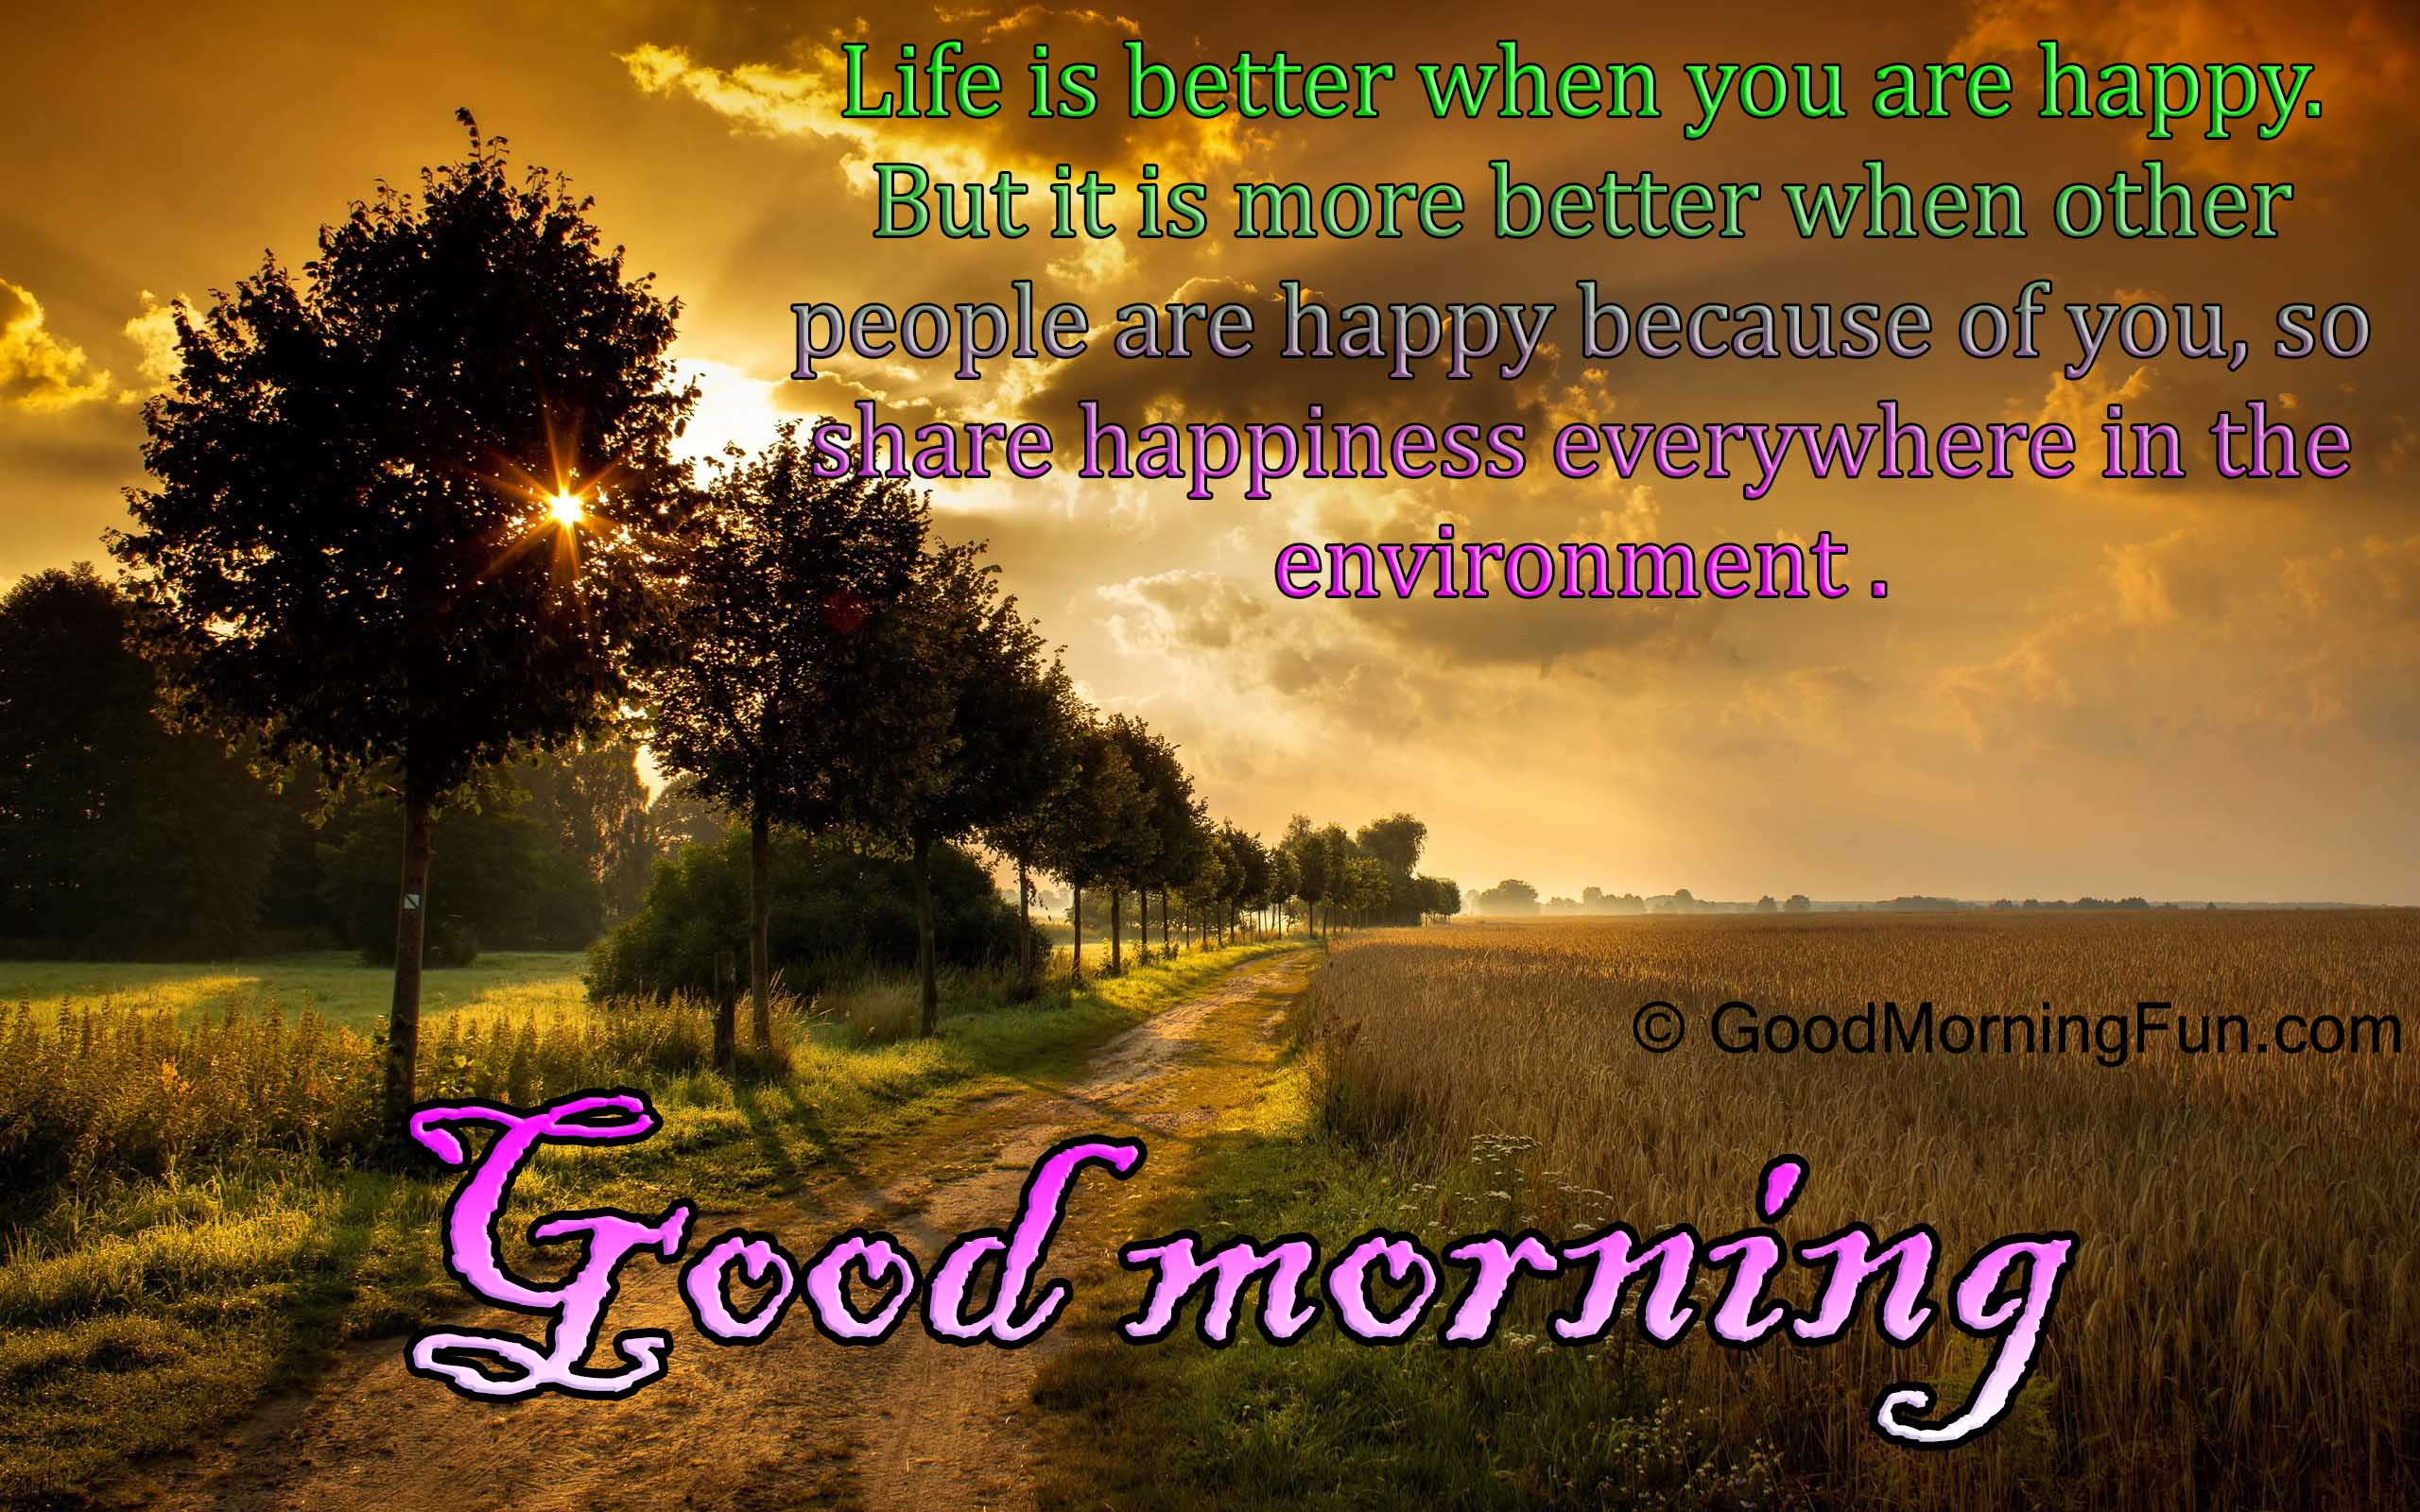 Good Day Quotes Good Morning Quotes On Attitude Day Sunrise  Good Morning Fun